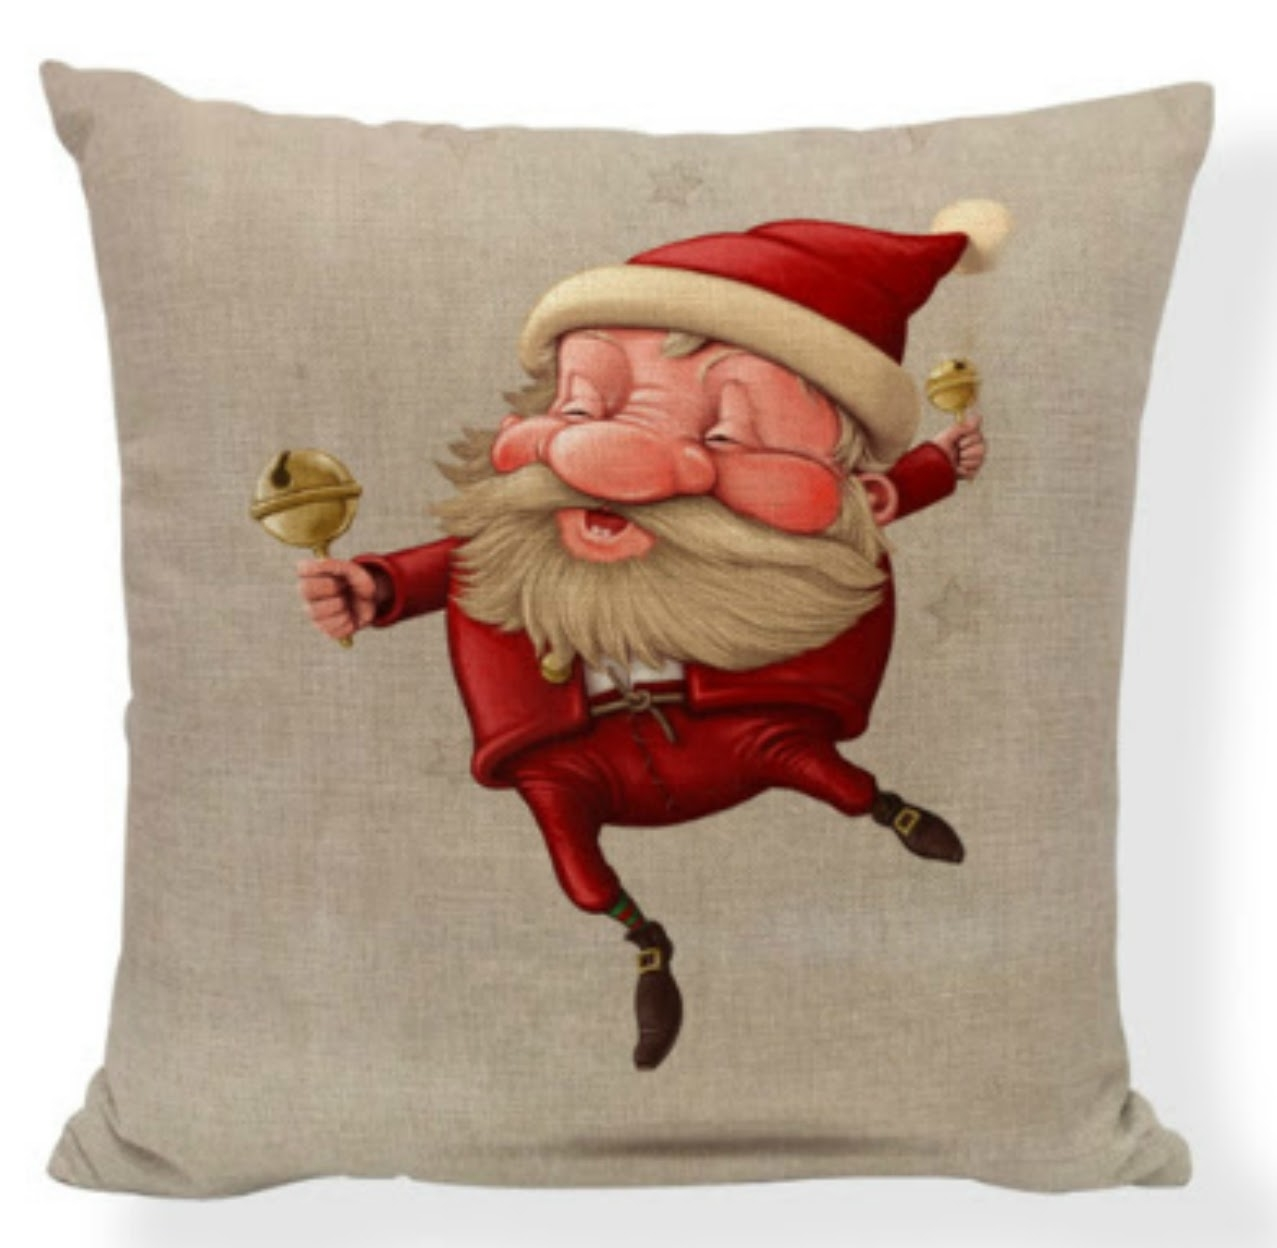 BUY 2 GET 1 Free Festive Santa Christmas Pillow Covers - Jingle Bell Santa